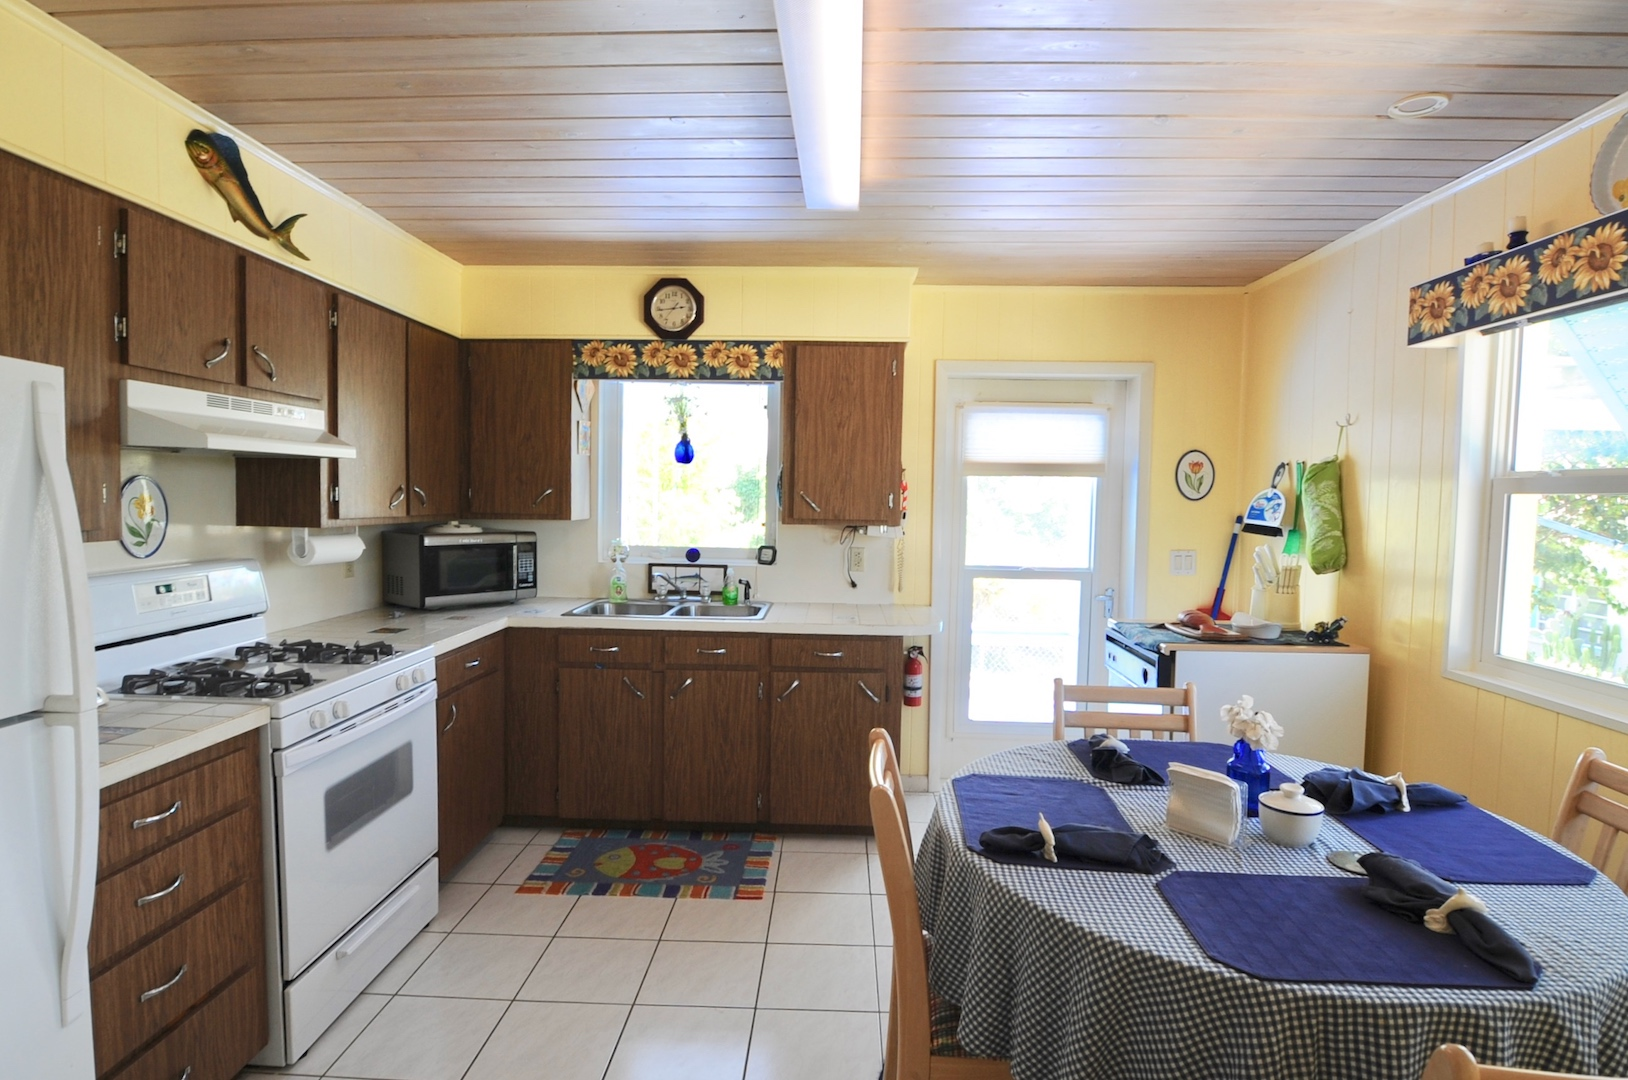 Home for sale in Man-o-war cay Abaco Bahamas with ceramic tile floors